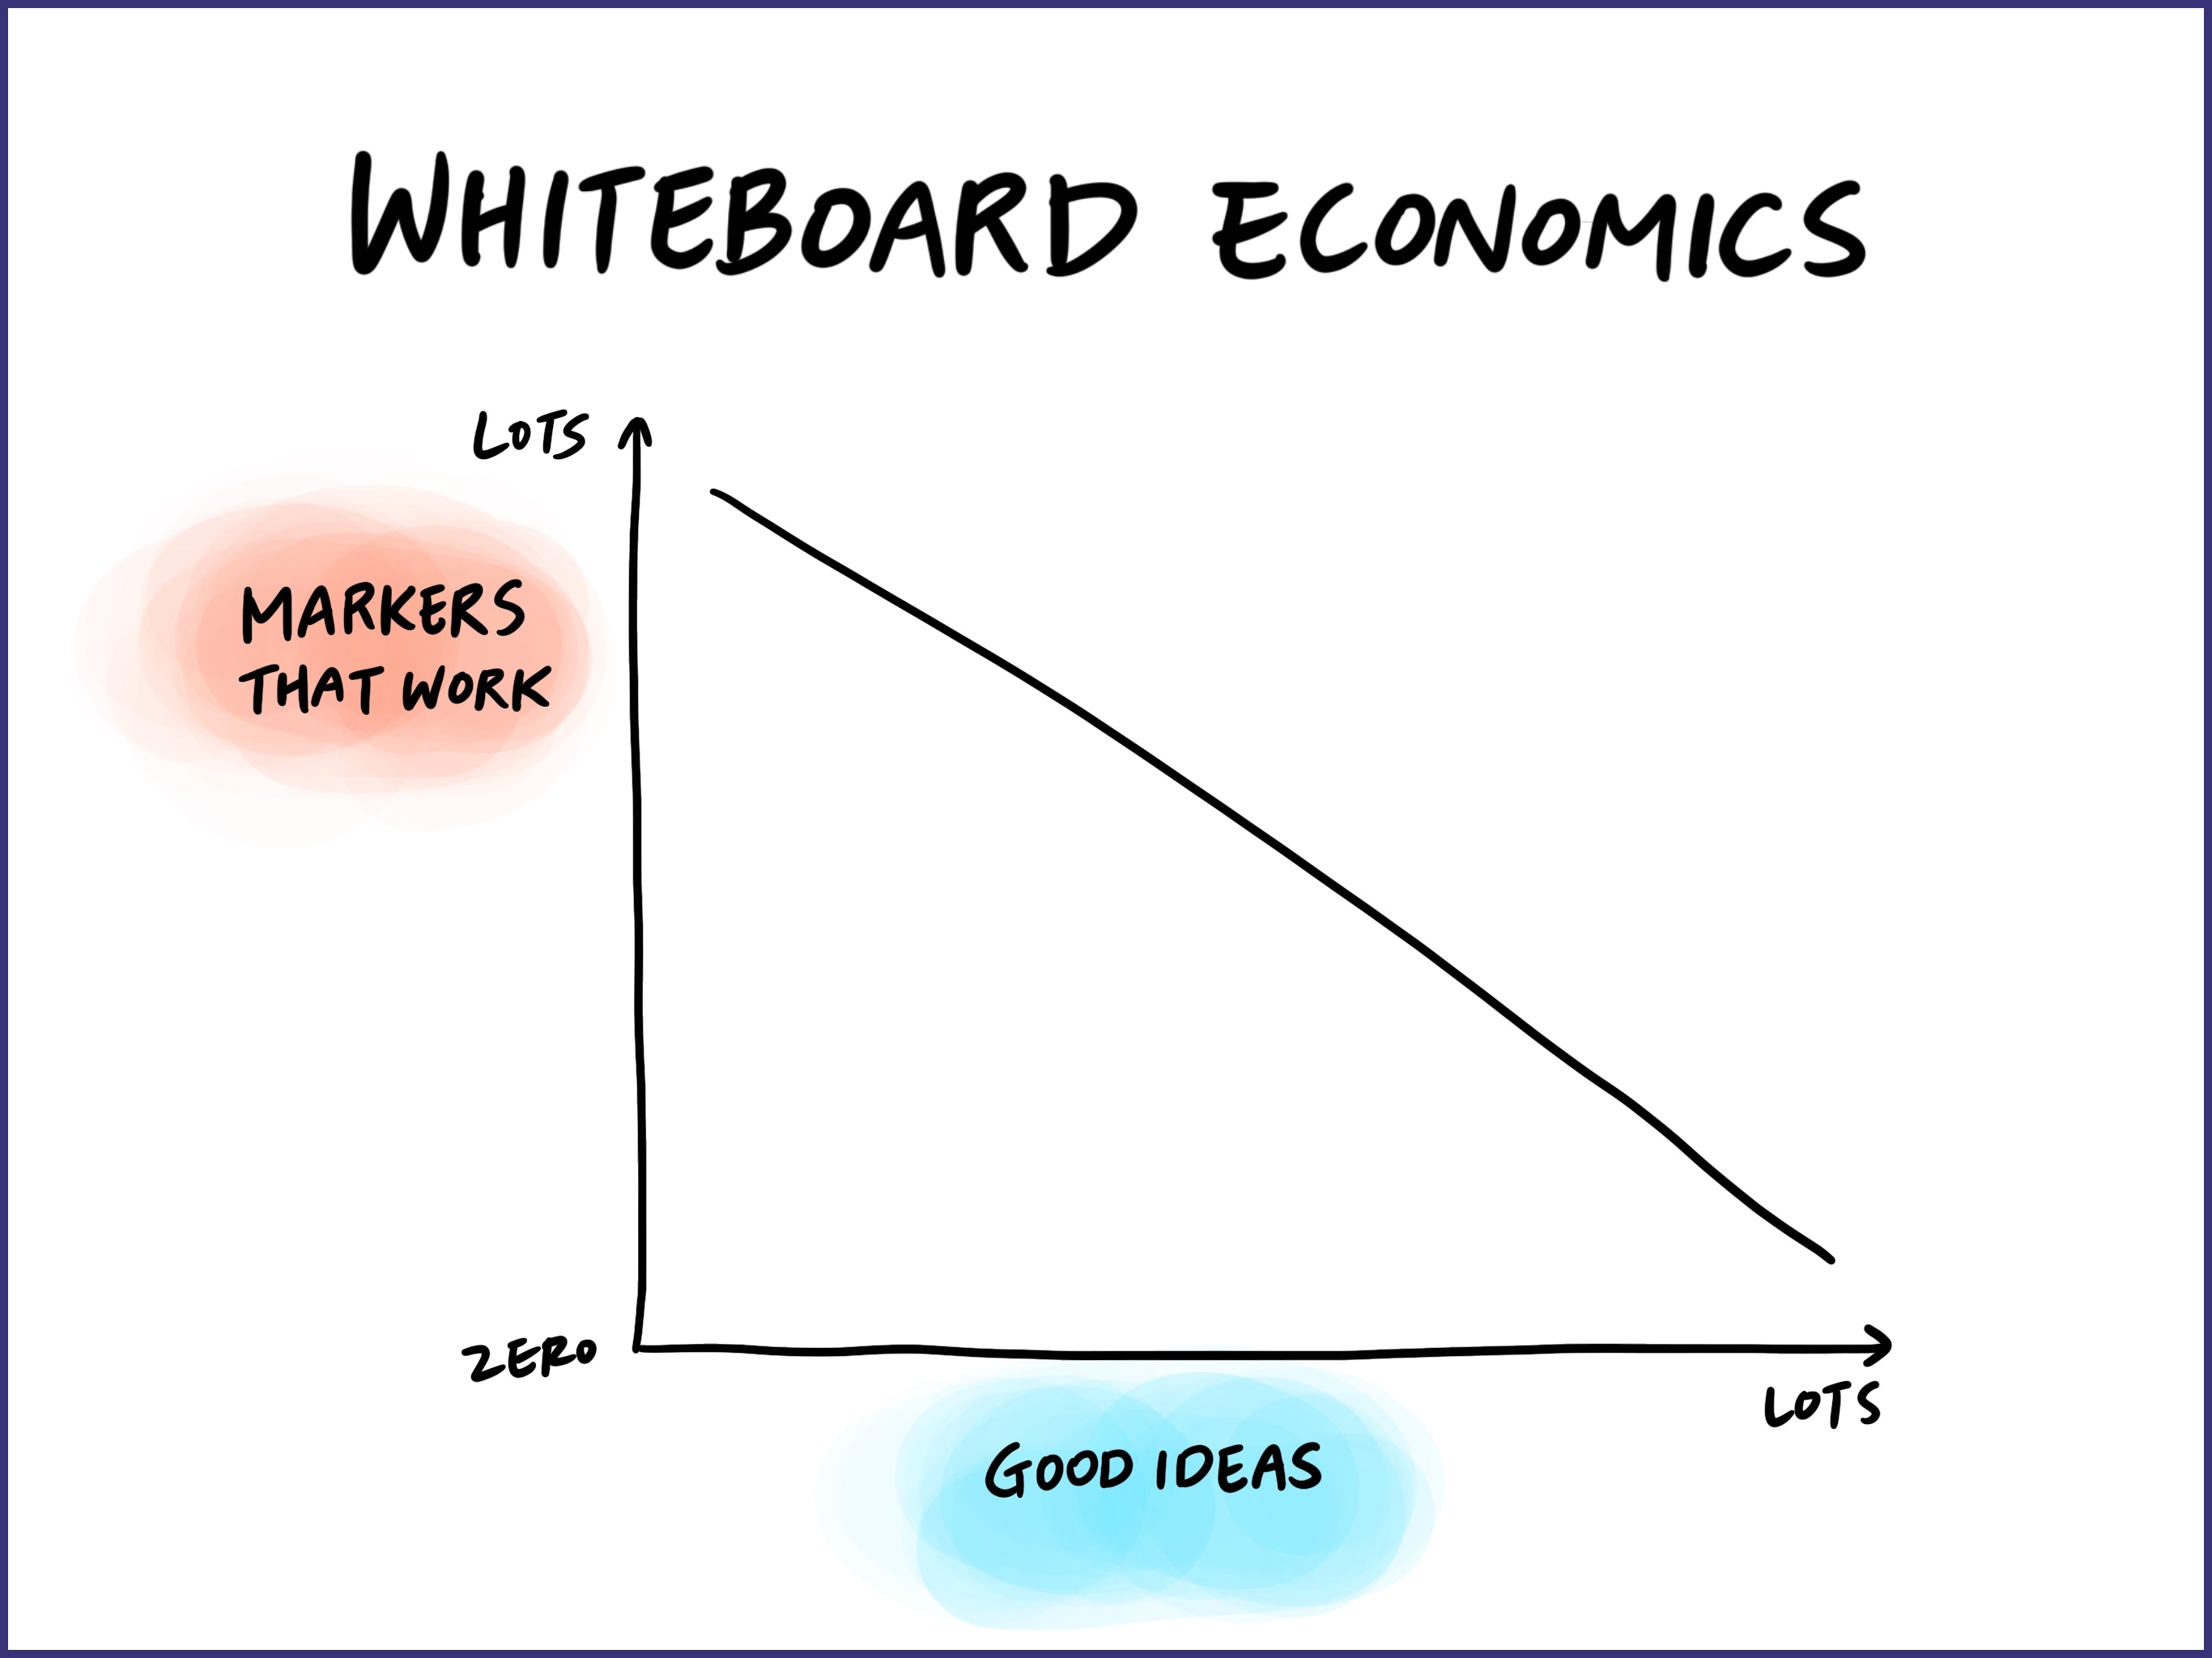 The law of whiteboard economics states that the more good ideas you have flowing out of you, the fewer markers that actually work are available